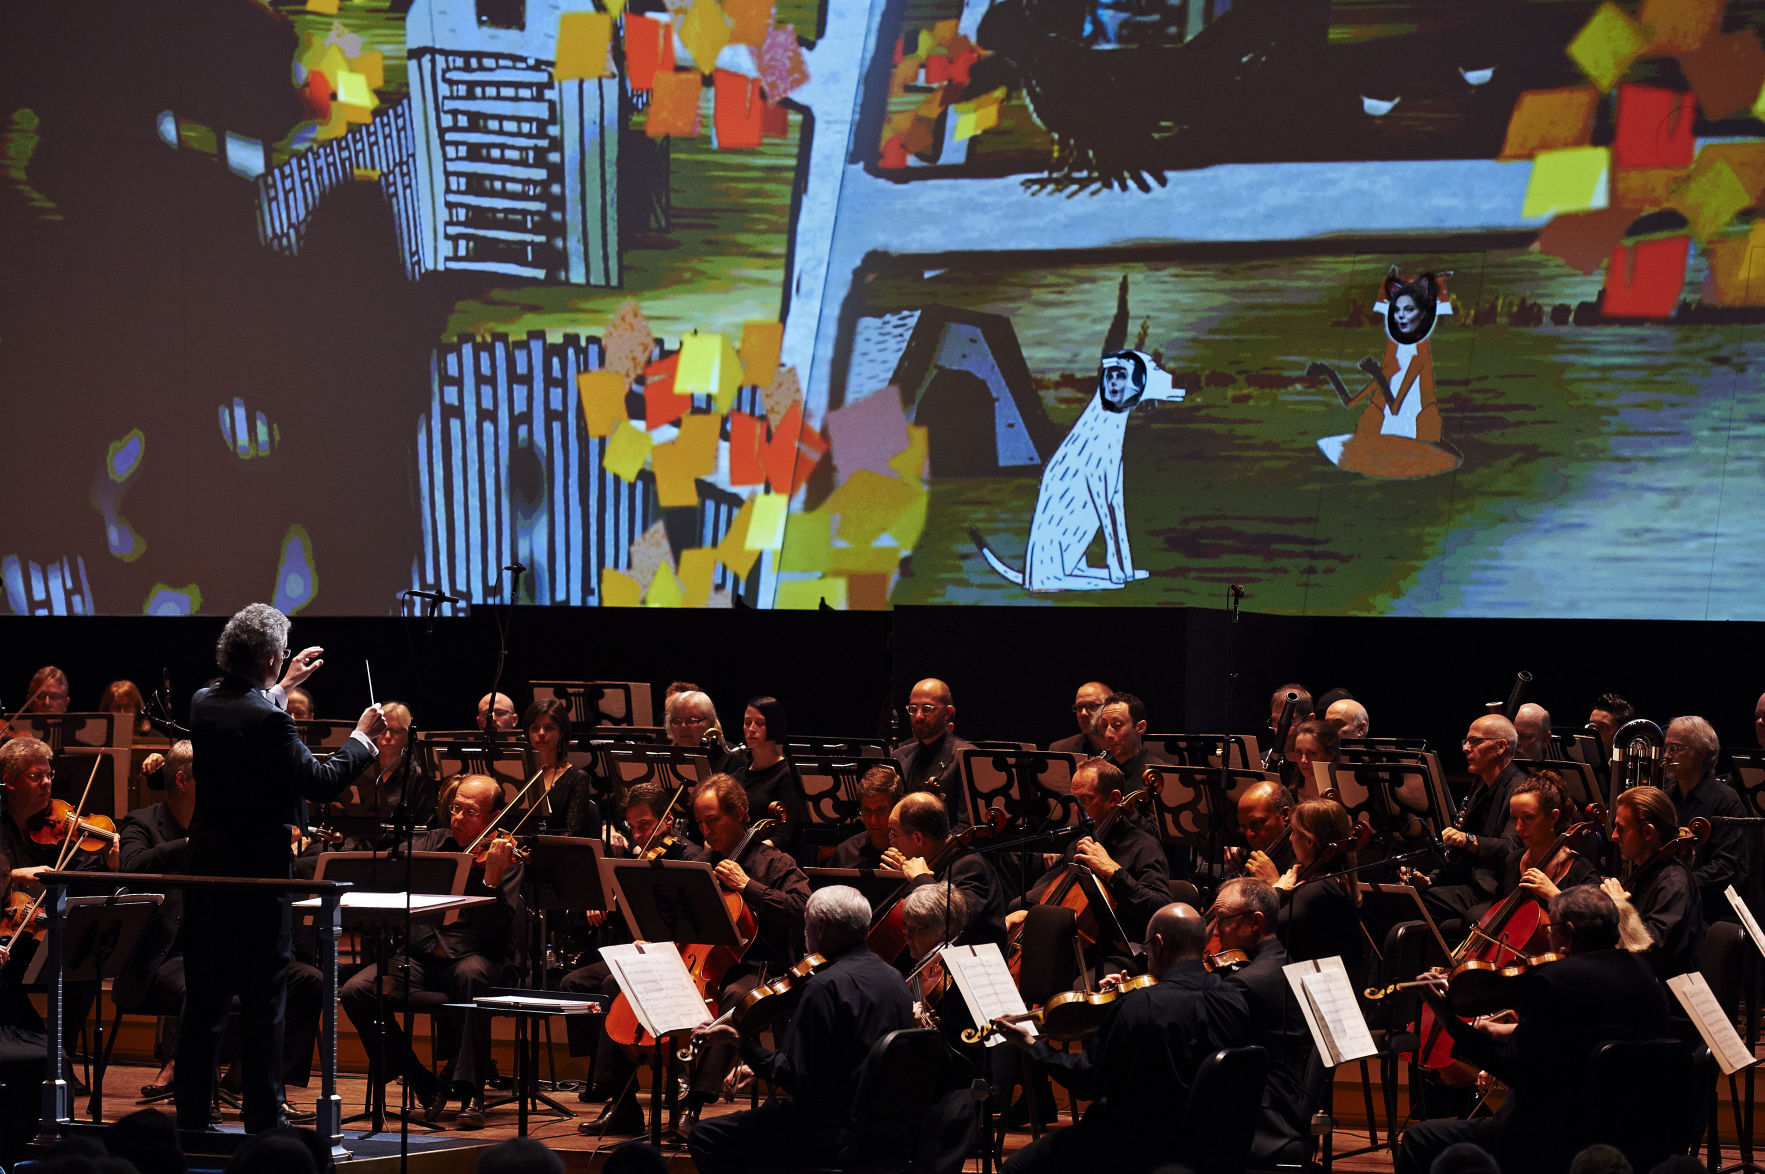 """Cleveland Orchestra Music Director, Franz Welser-Möst, leads the Orchestra in the 2014 production of Janáček's opera, """"The Cunning Little Vixen"""" at Severance Hall. Photo / Roger Mastroianni"""